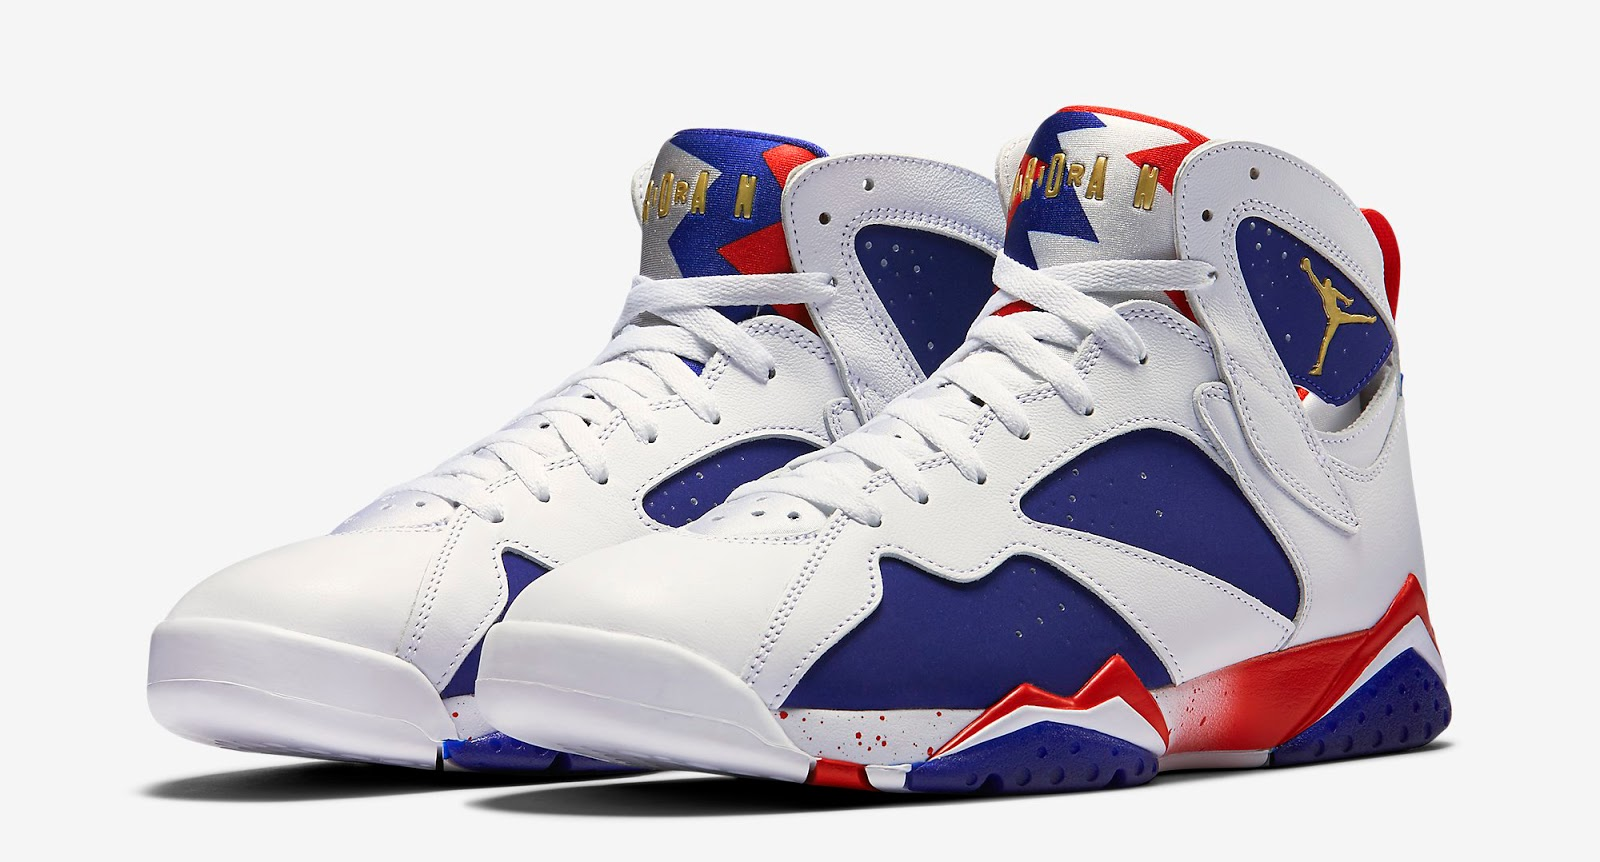 jordan 7 blue and gold